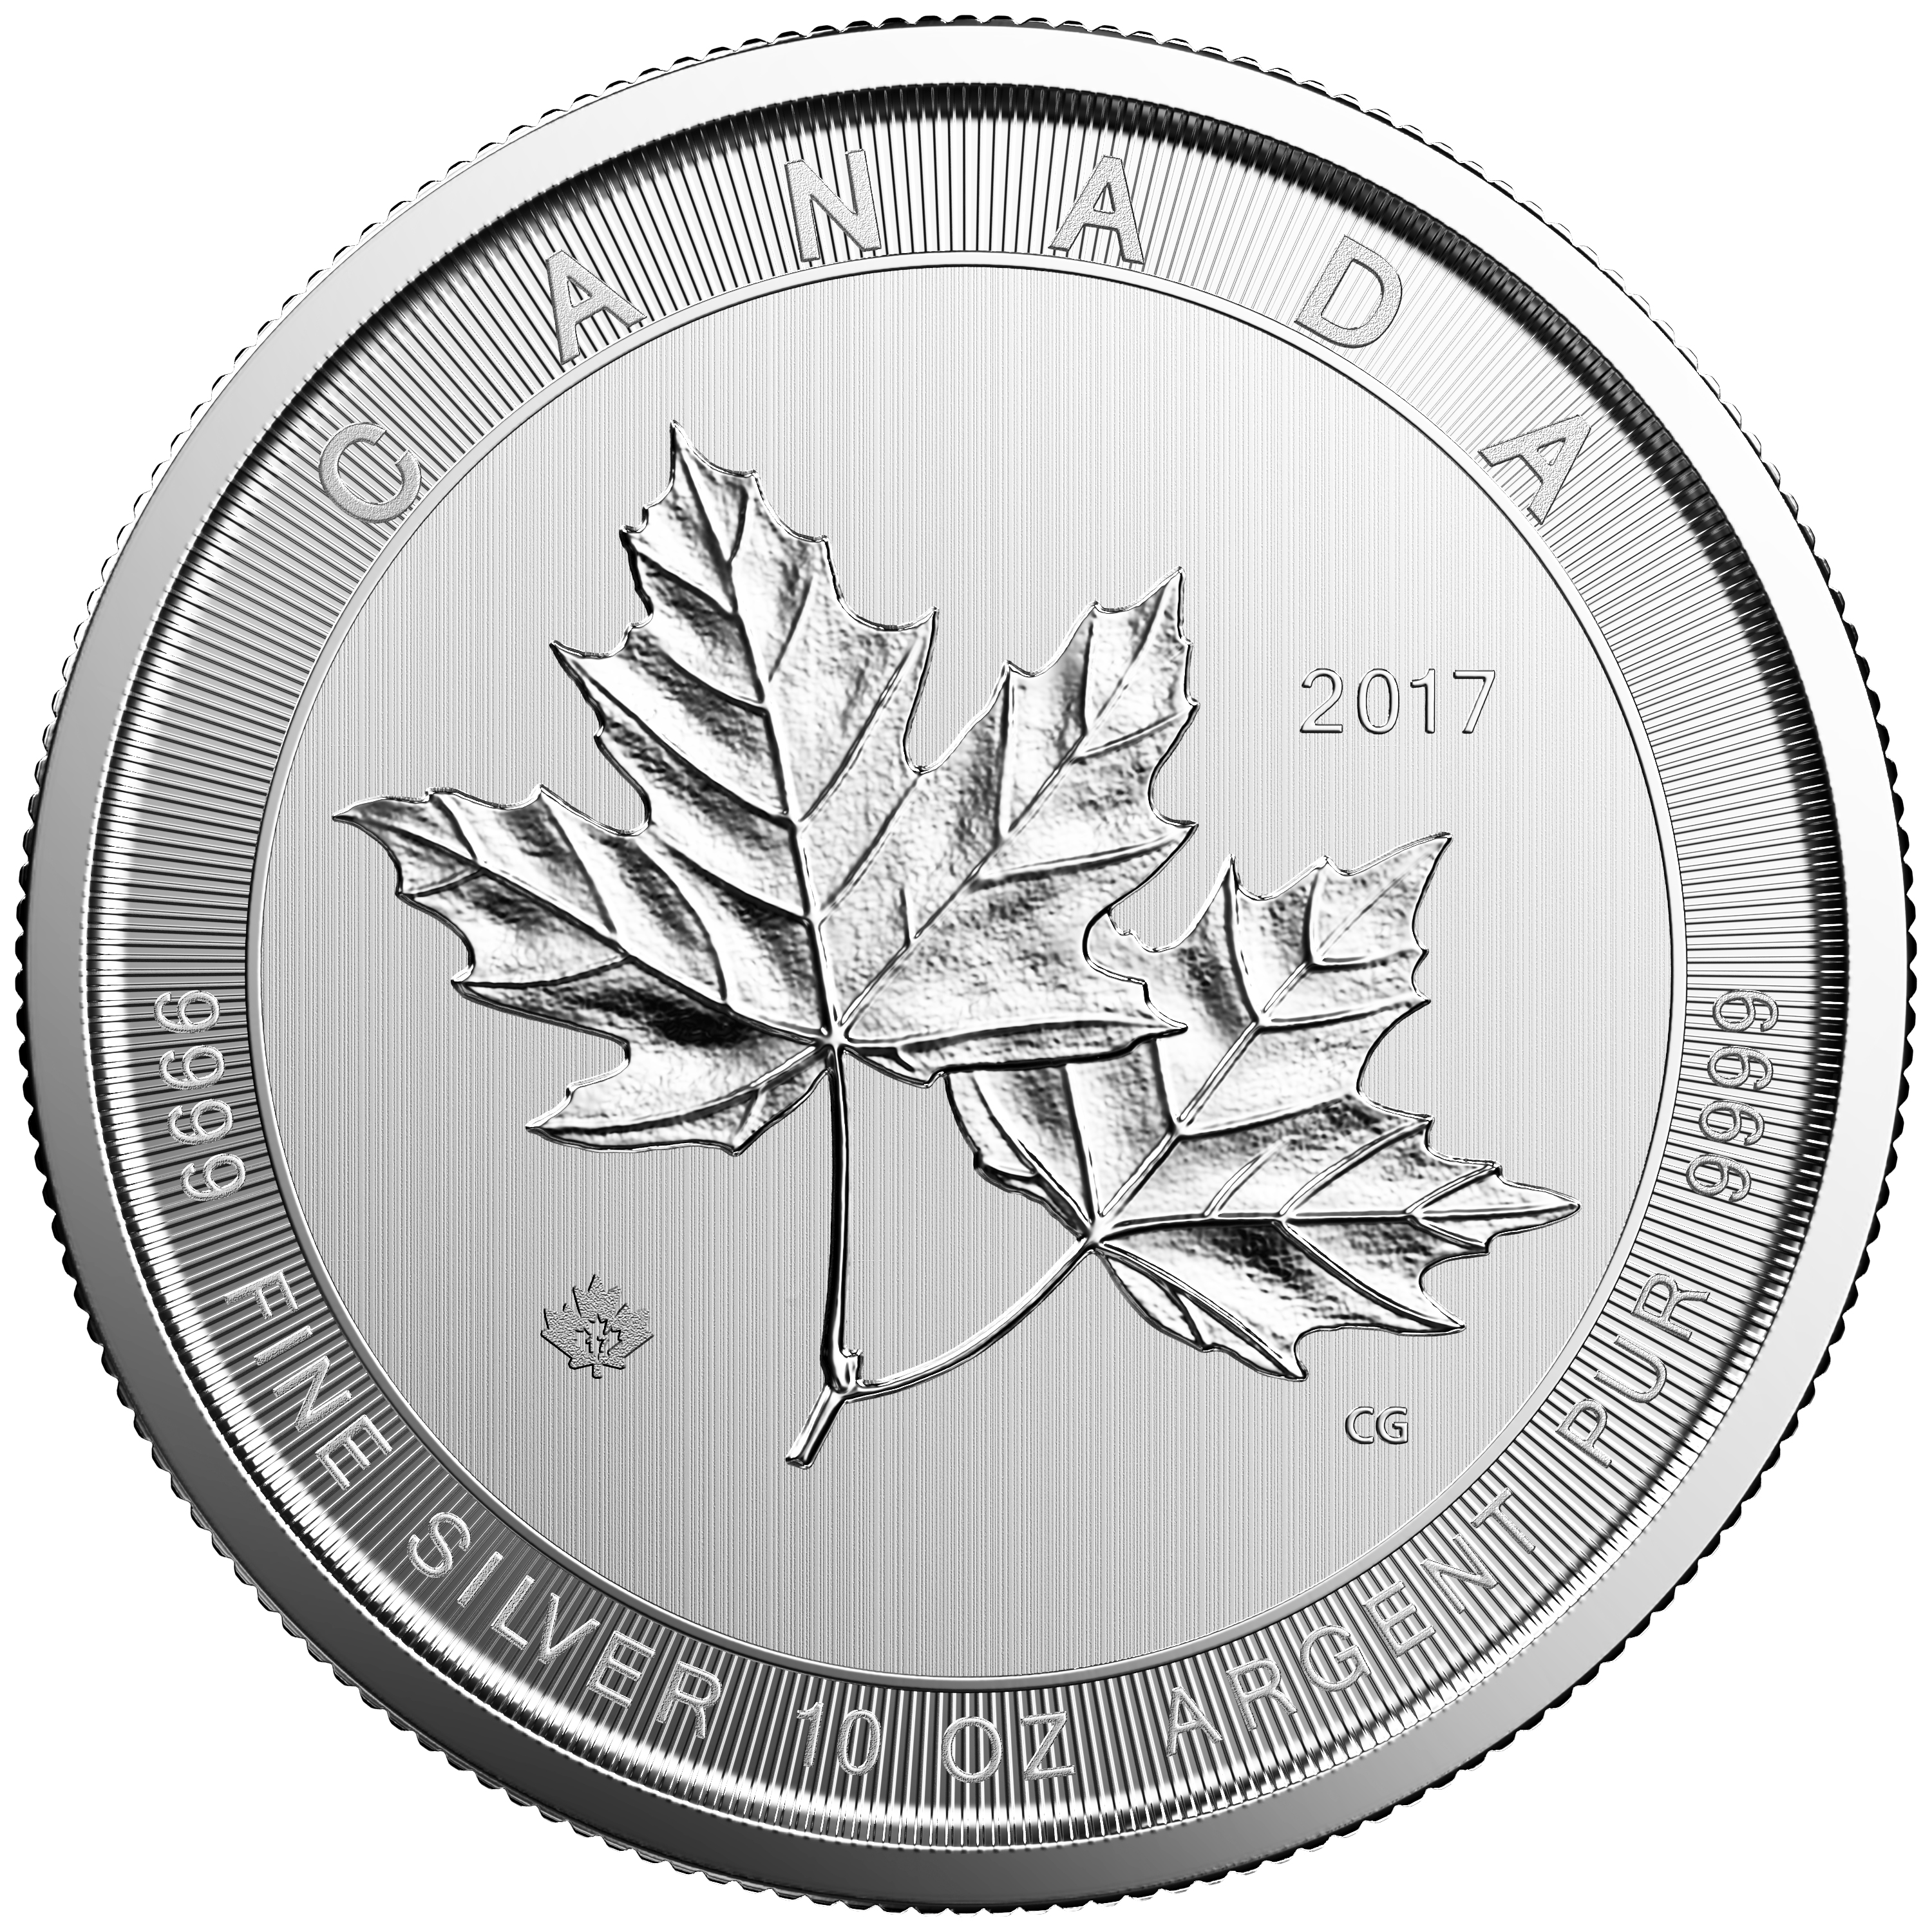 10 Unzen Silbermünze Kanada Magnificent Maple Leaf 2017